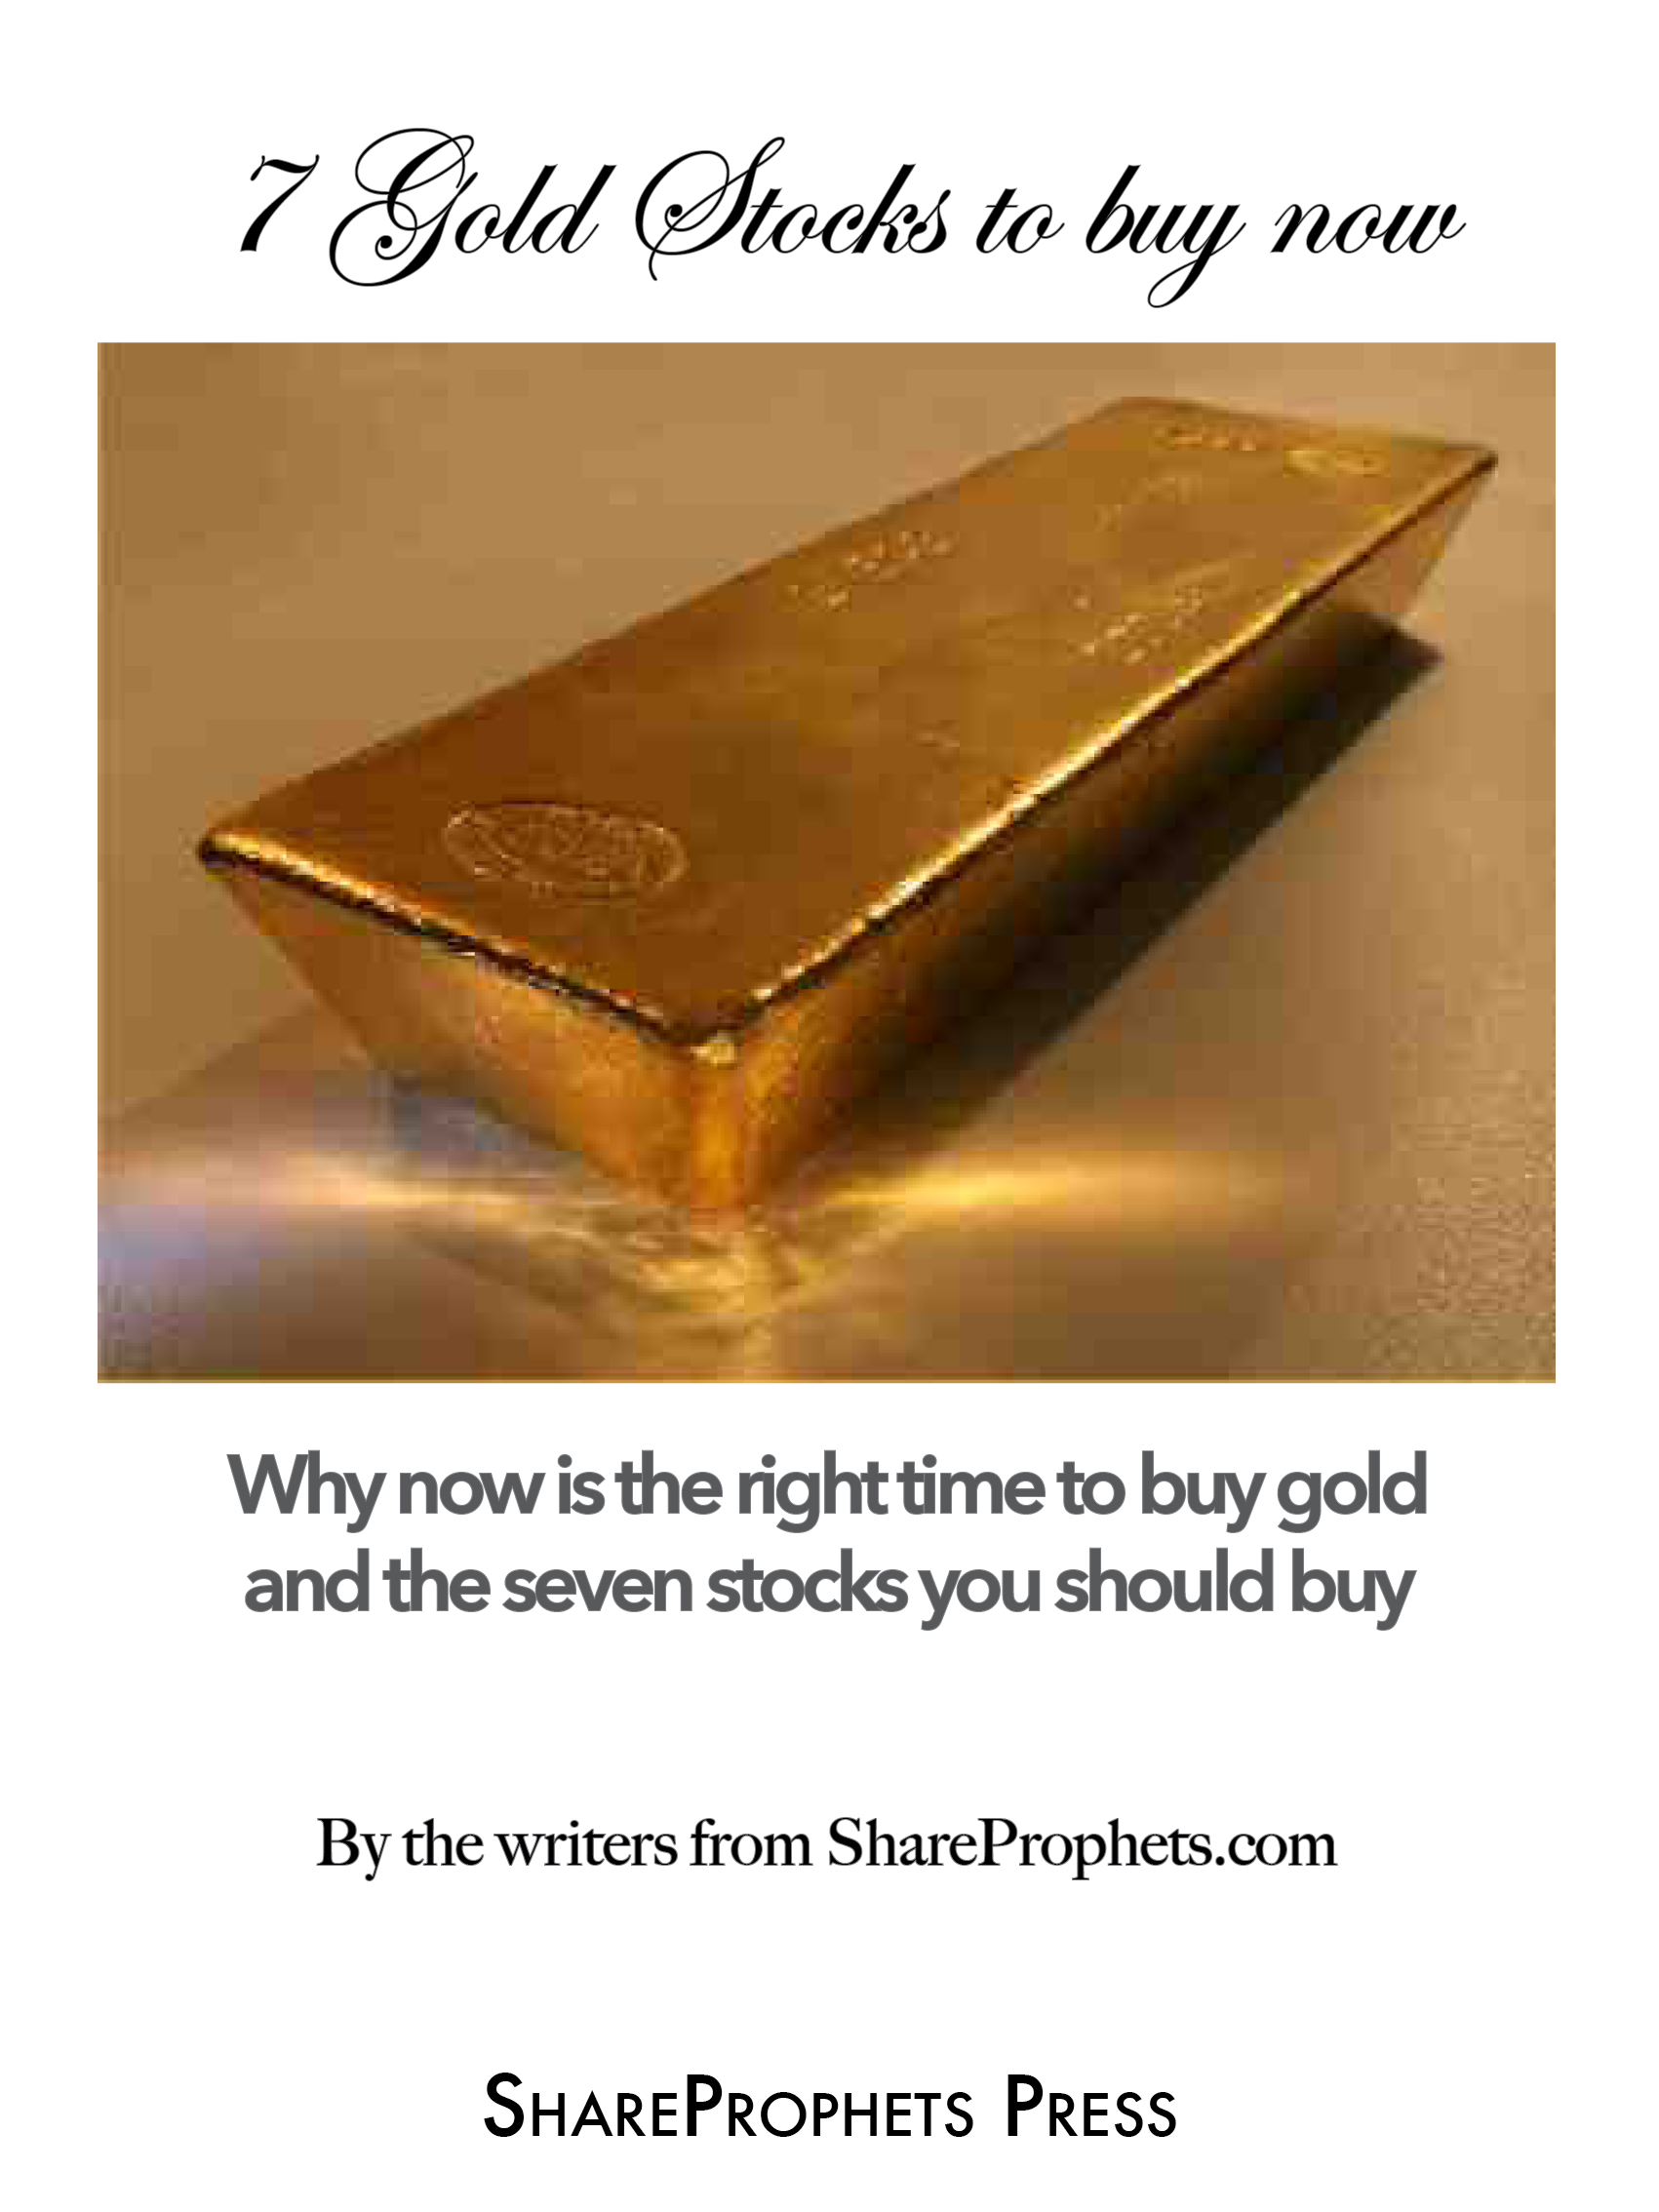 Order your complimentary copy of 7 Gold Stocks to buy now